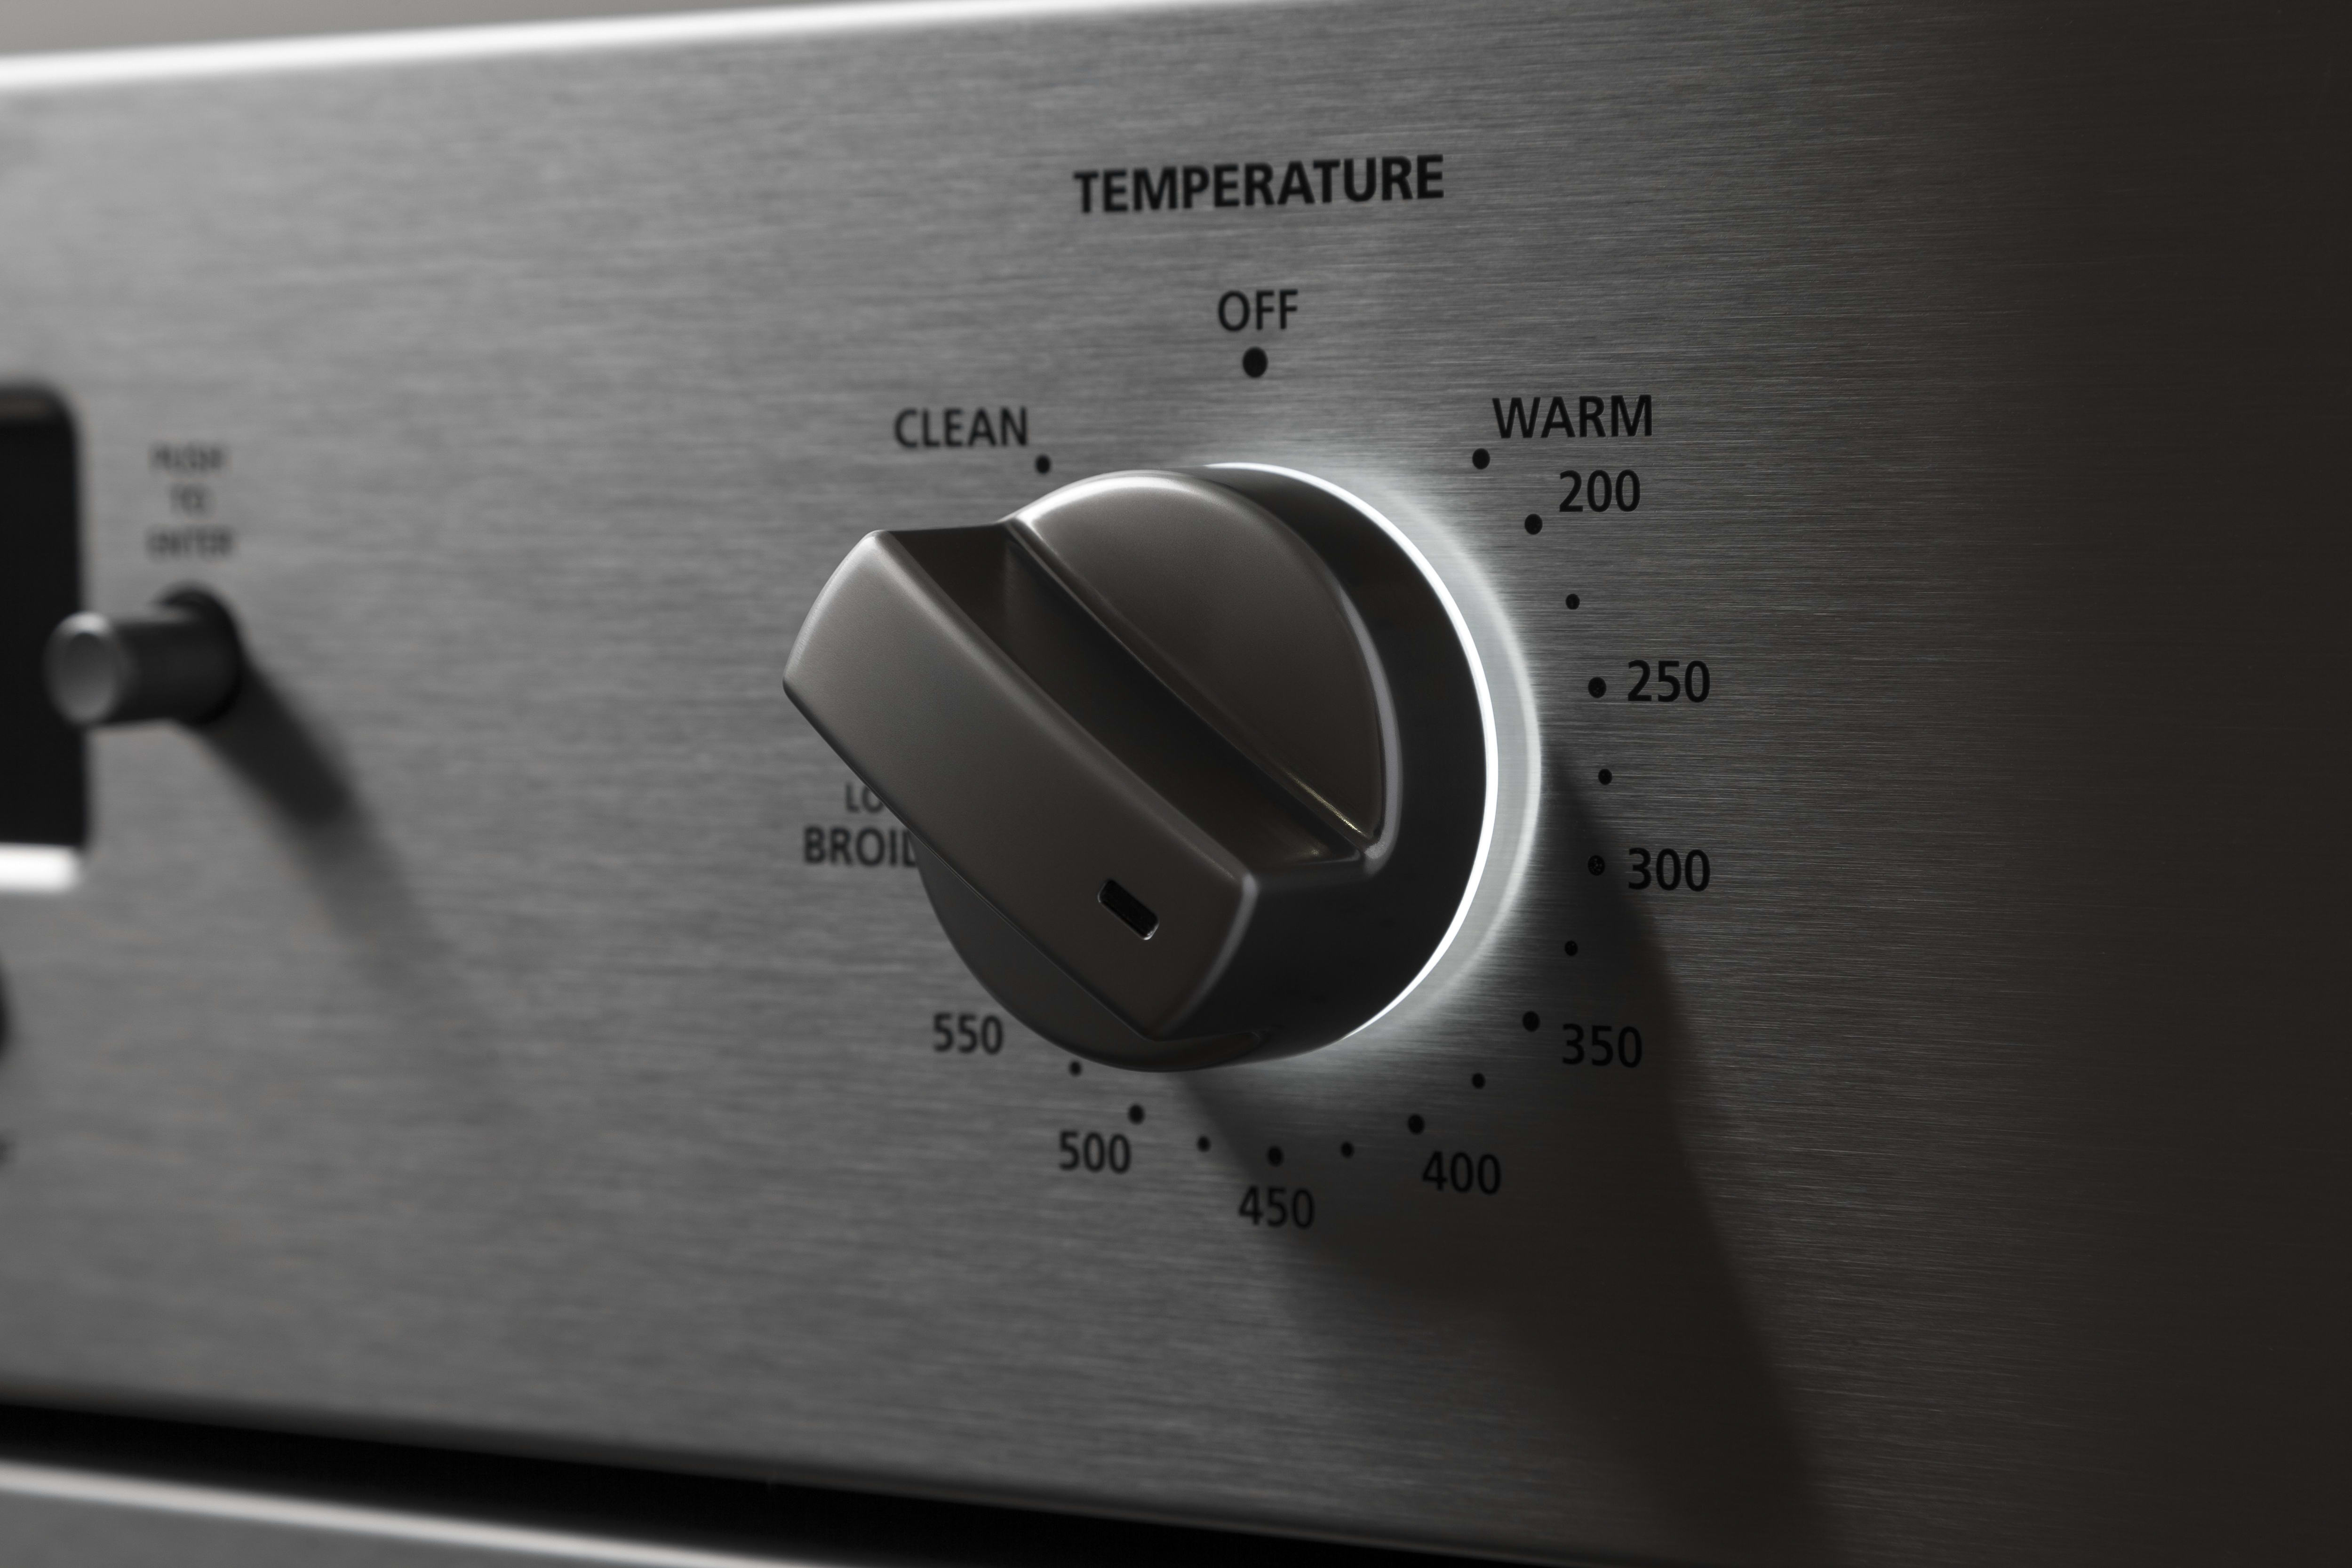 The stylish temperature control dial is lit from behind.